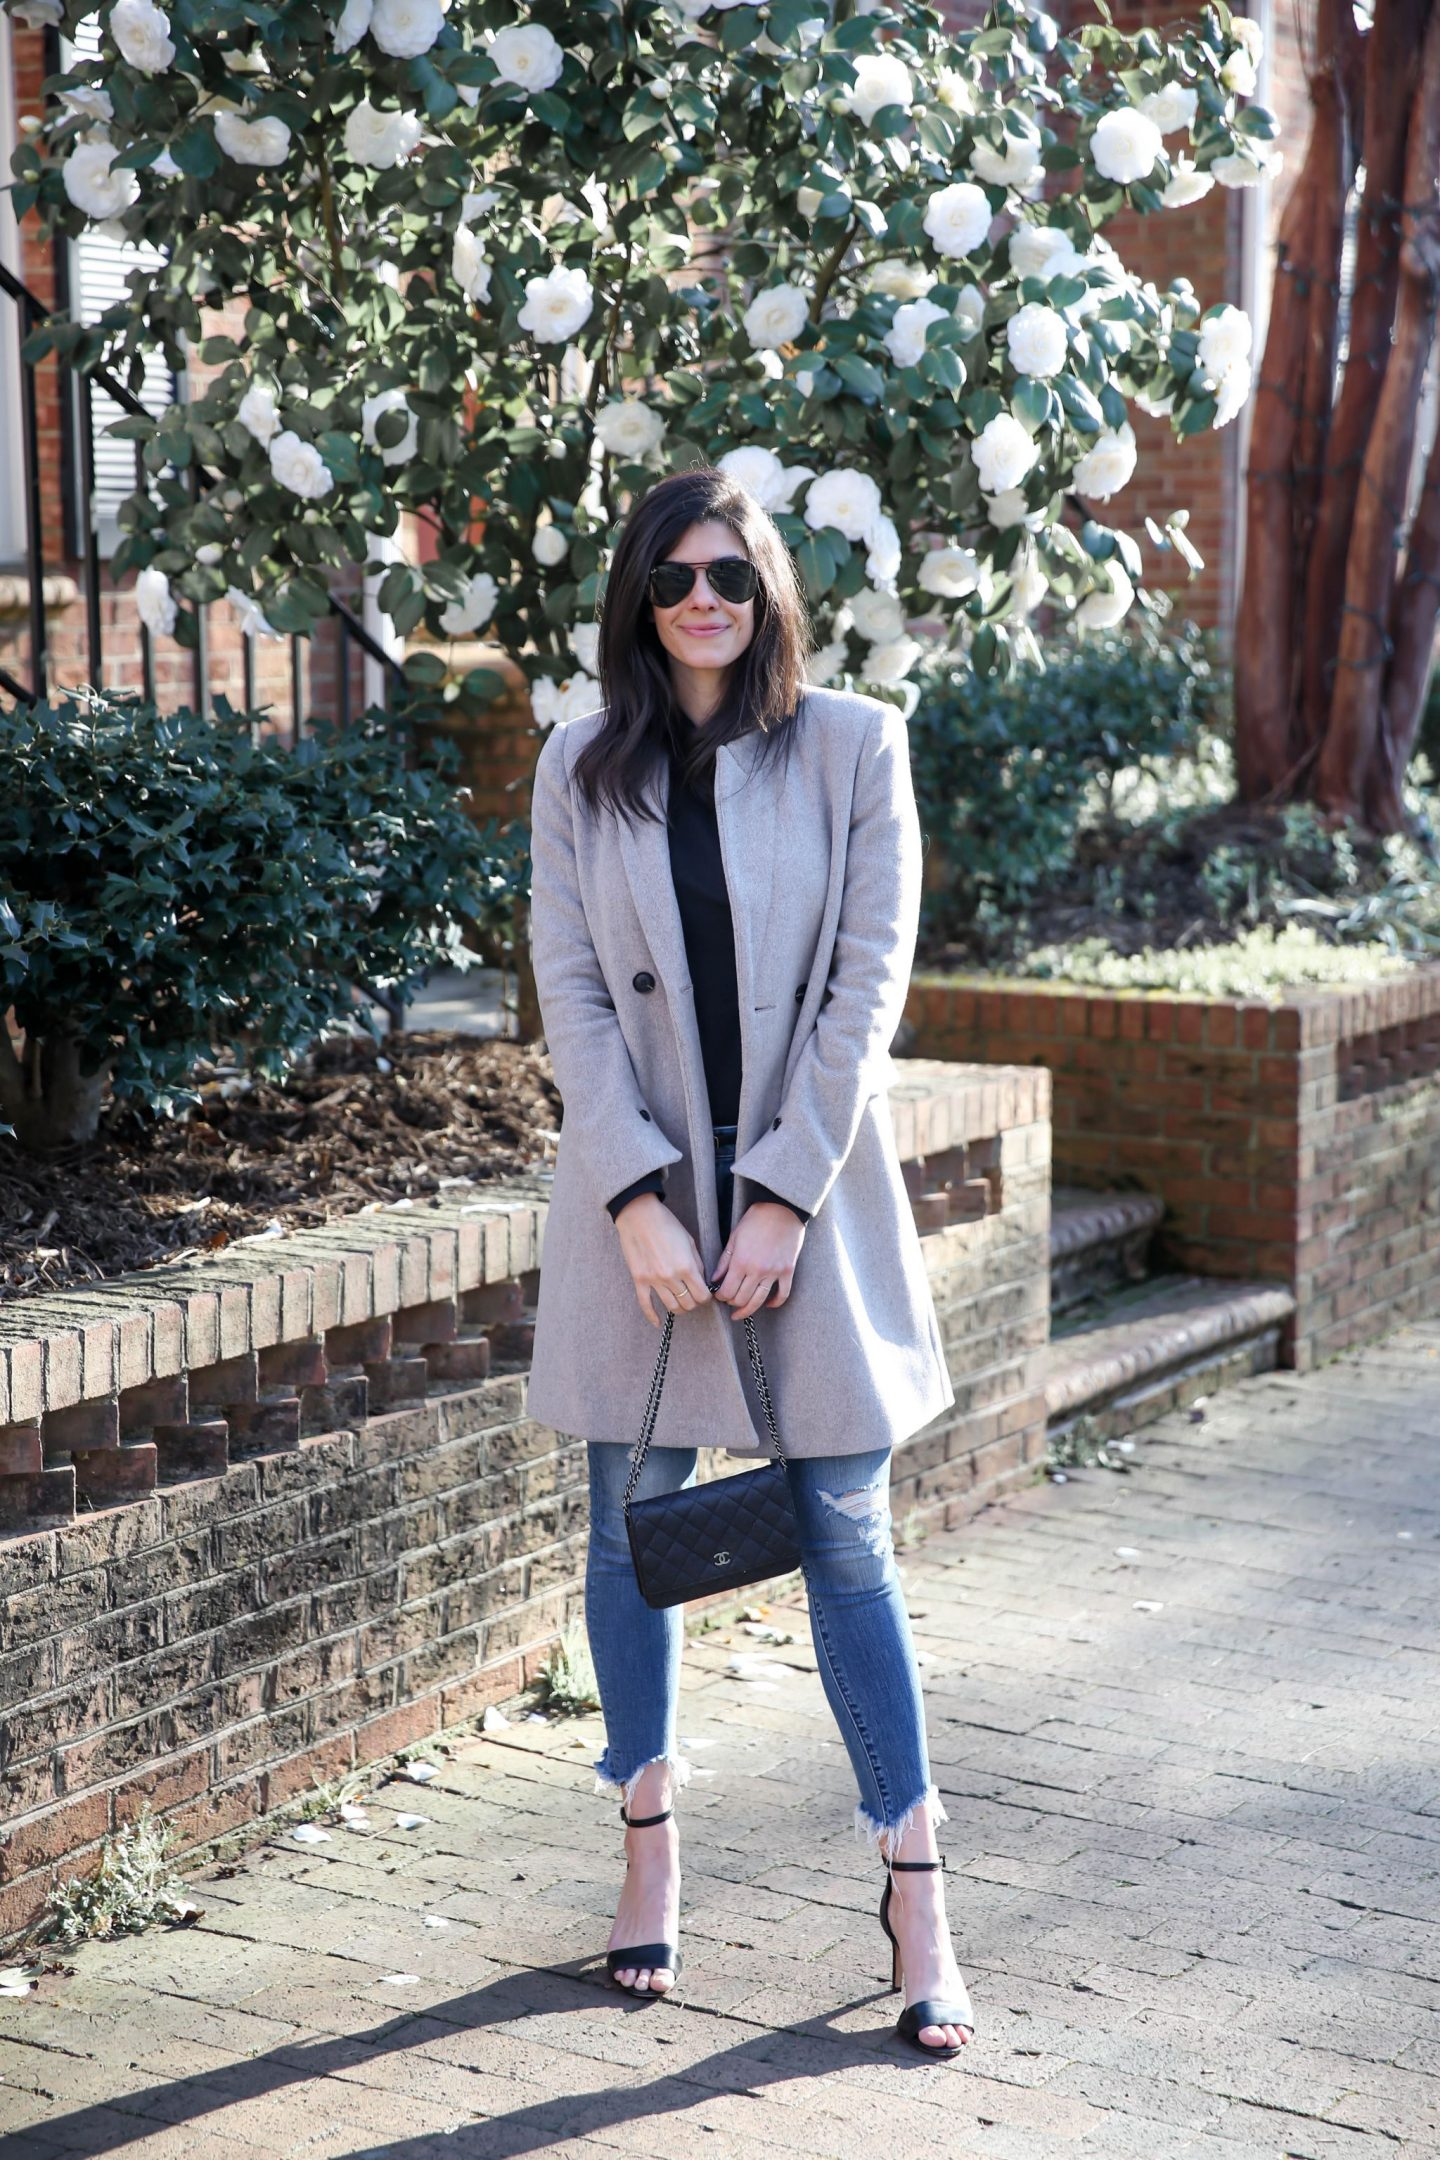 chic winter street style - Lauren Schwaiger Blog